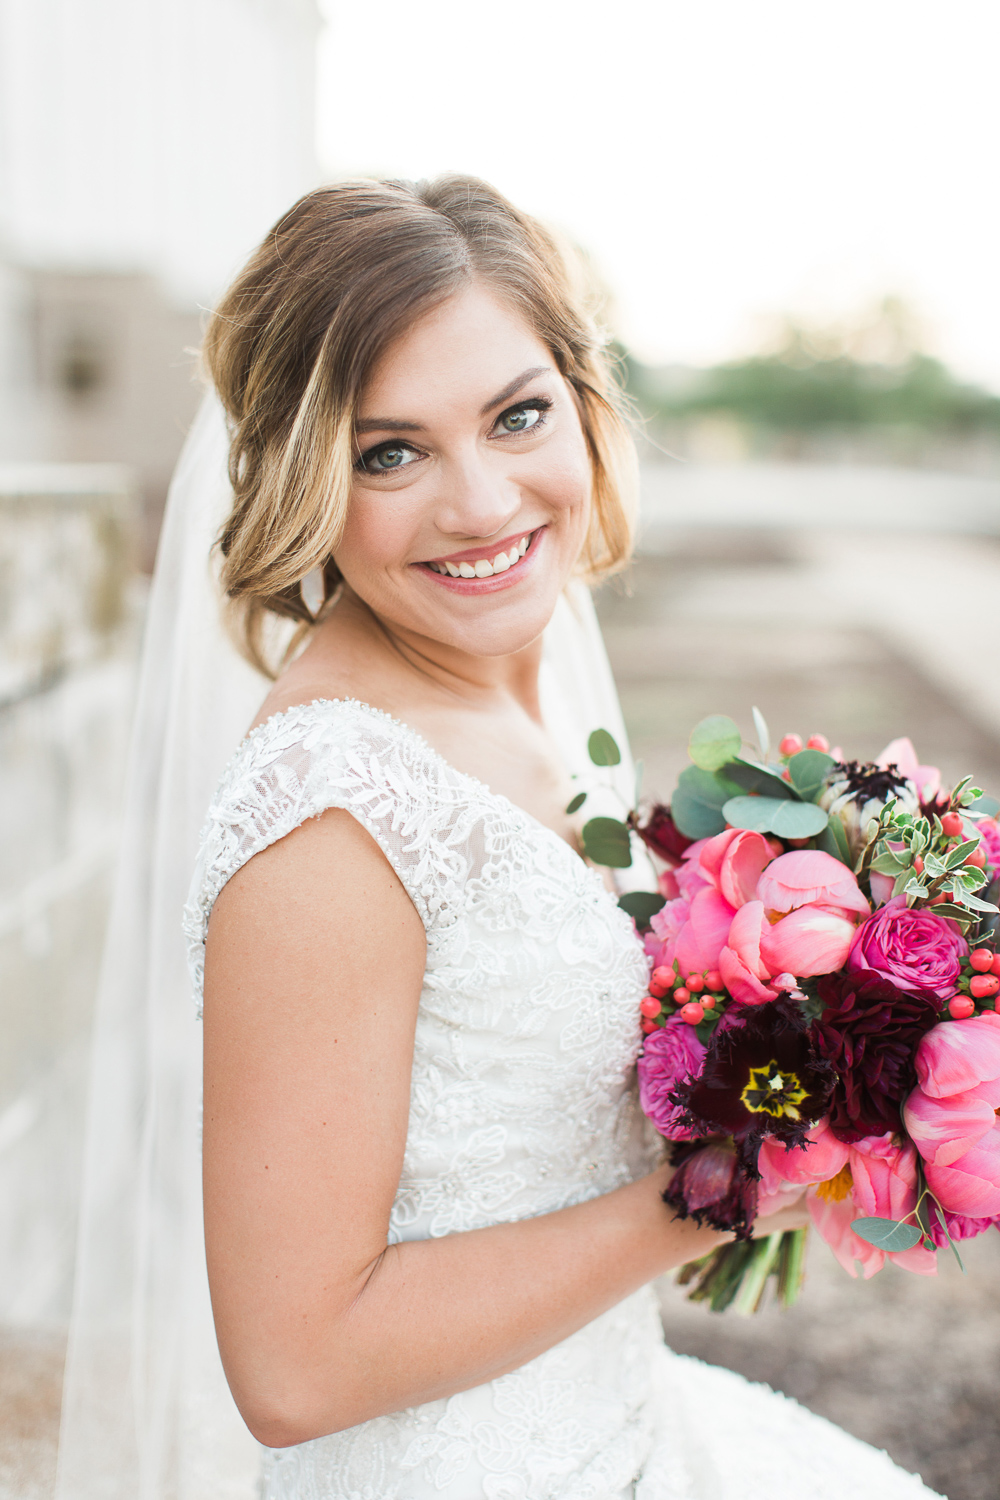 7be02-morganbridalskrp-32.jpg